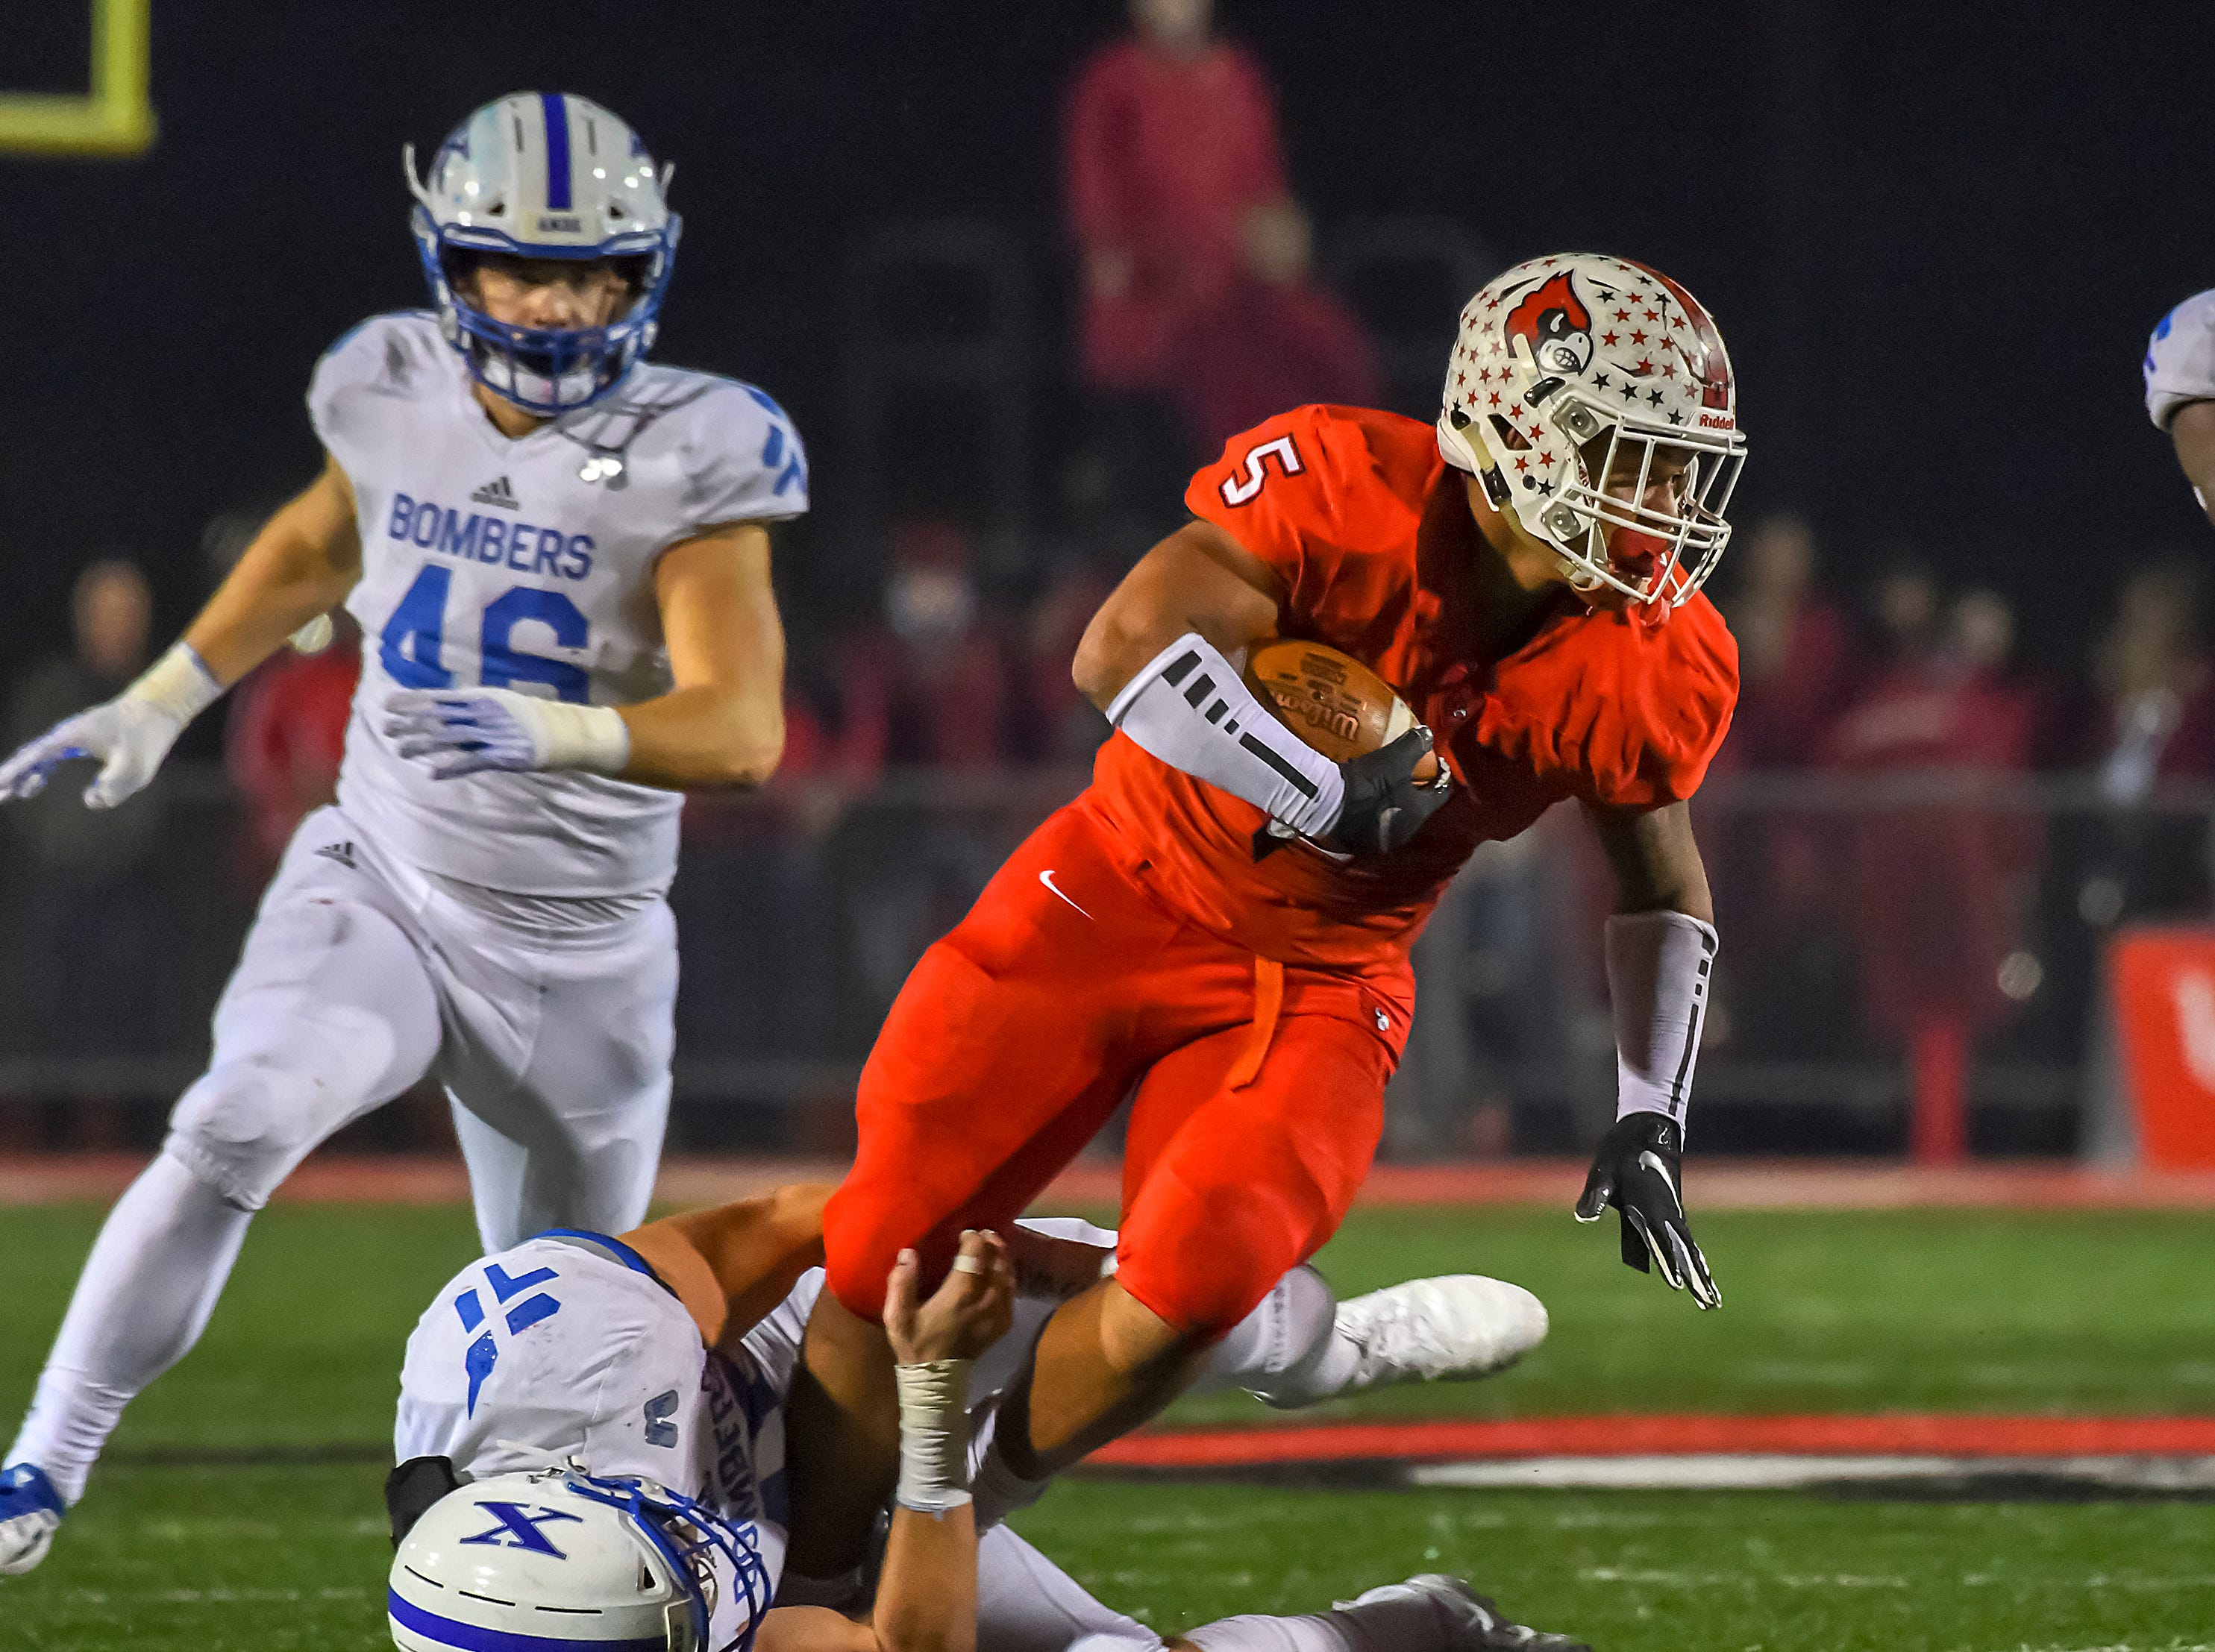 Ivan Pace Jr. of Colerain runs the ball against St. X in the OHSAA DI Region 4 Playoffs at Colerain High School,  Friday Nov. 2, 2018